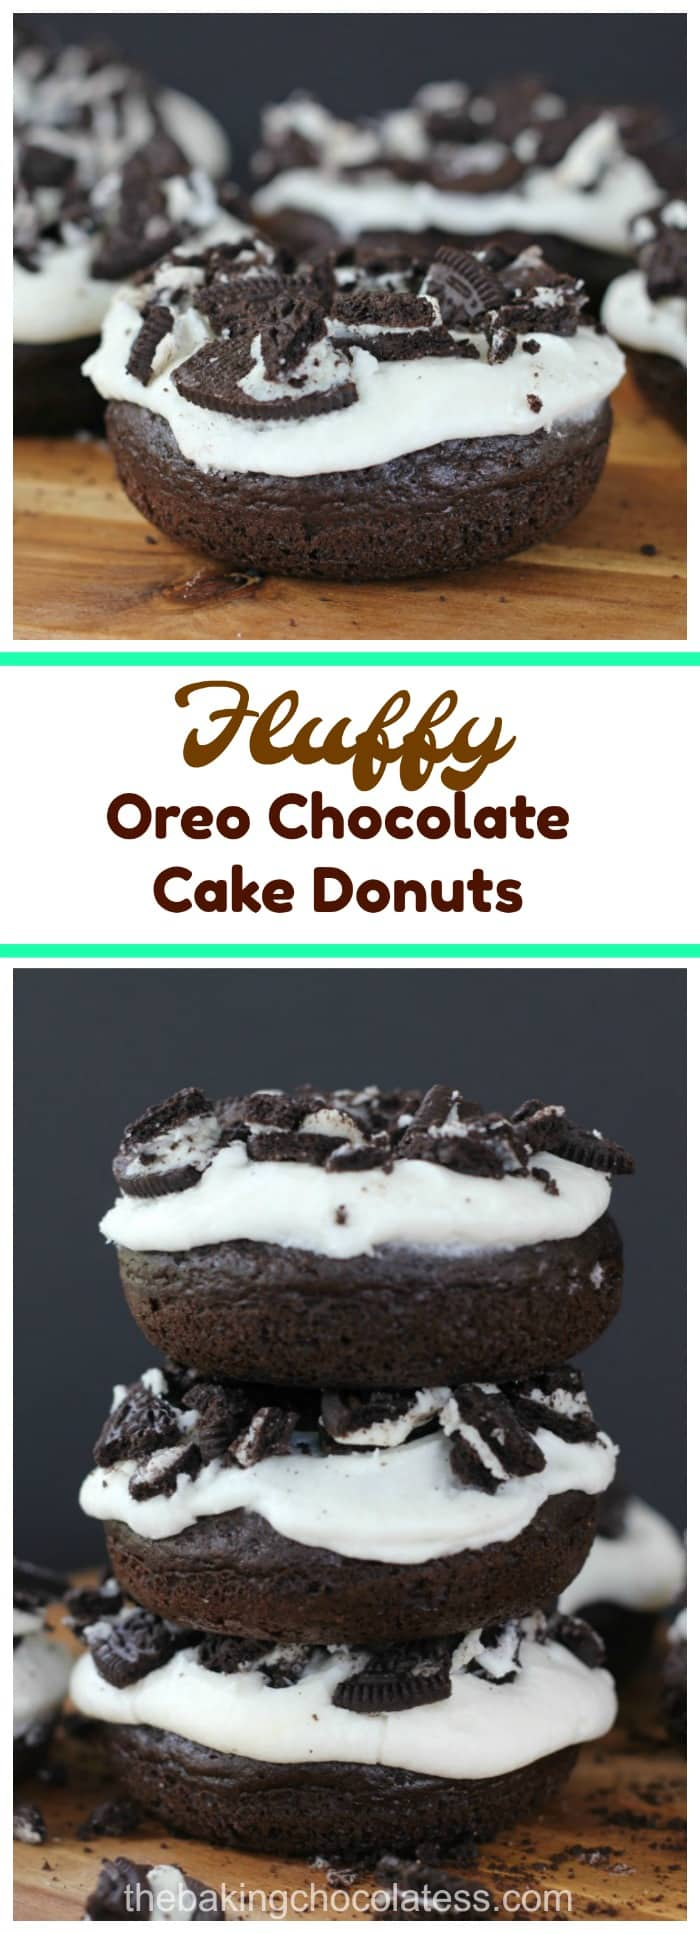 Fluffy Oreo Chocolate Cake Donuts - Moist and fluffy, addicting, melt-in-your mouth Oreo Vanilla Frosted Chocolate Cake Donuts are the way to go for a decadent, sweet rush of heavenly YUM!  Enjoy with your coffee or the old-school milk and cookie love!